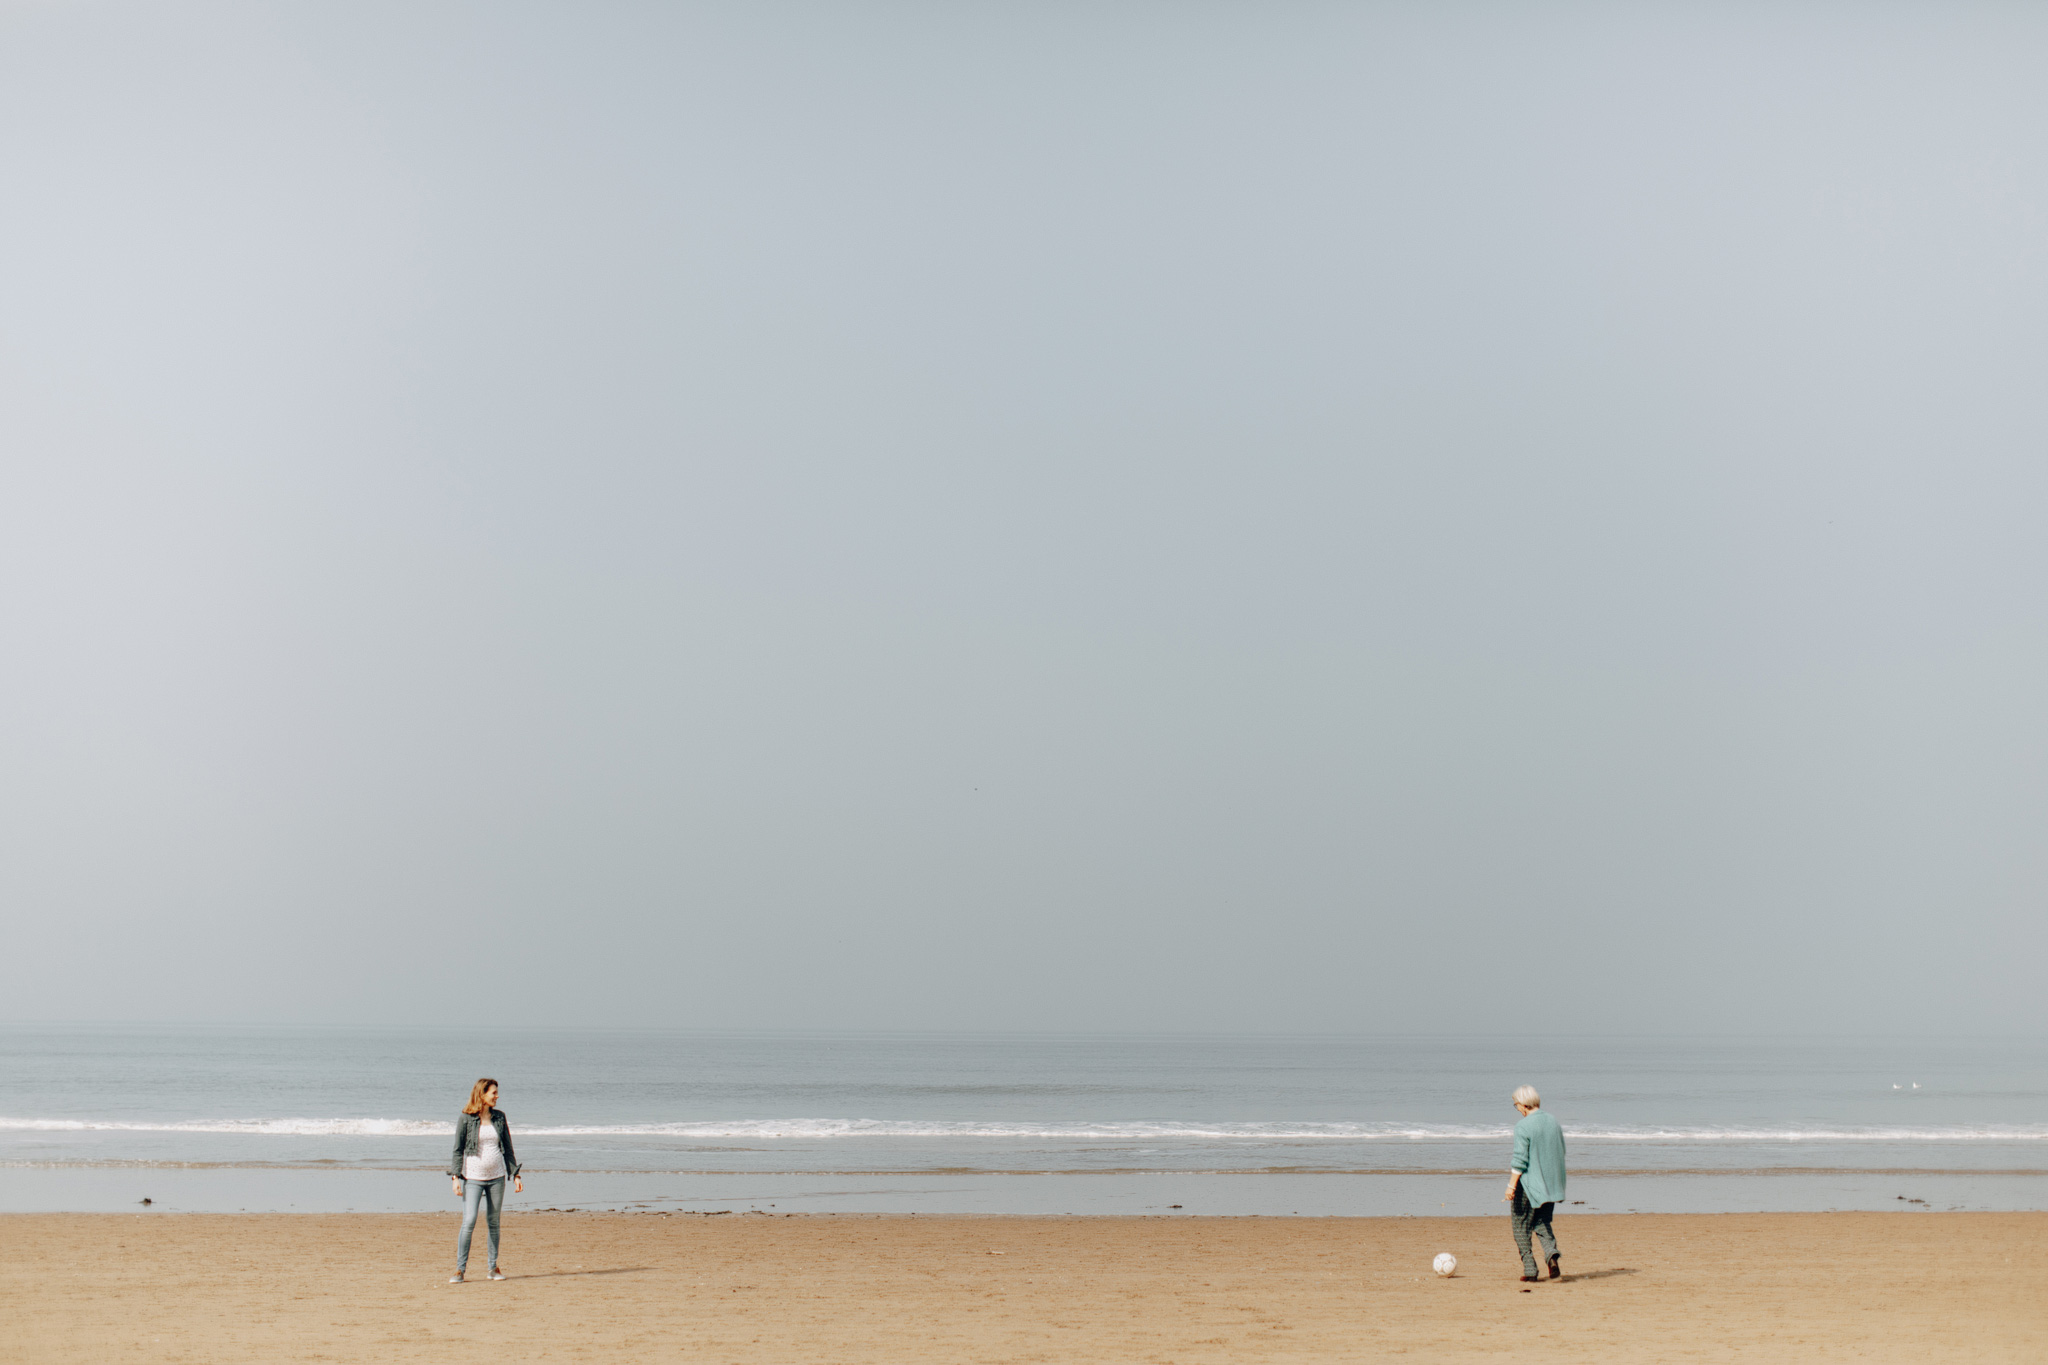 Beach shoreline with woman playing soccer